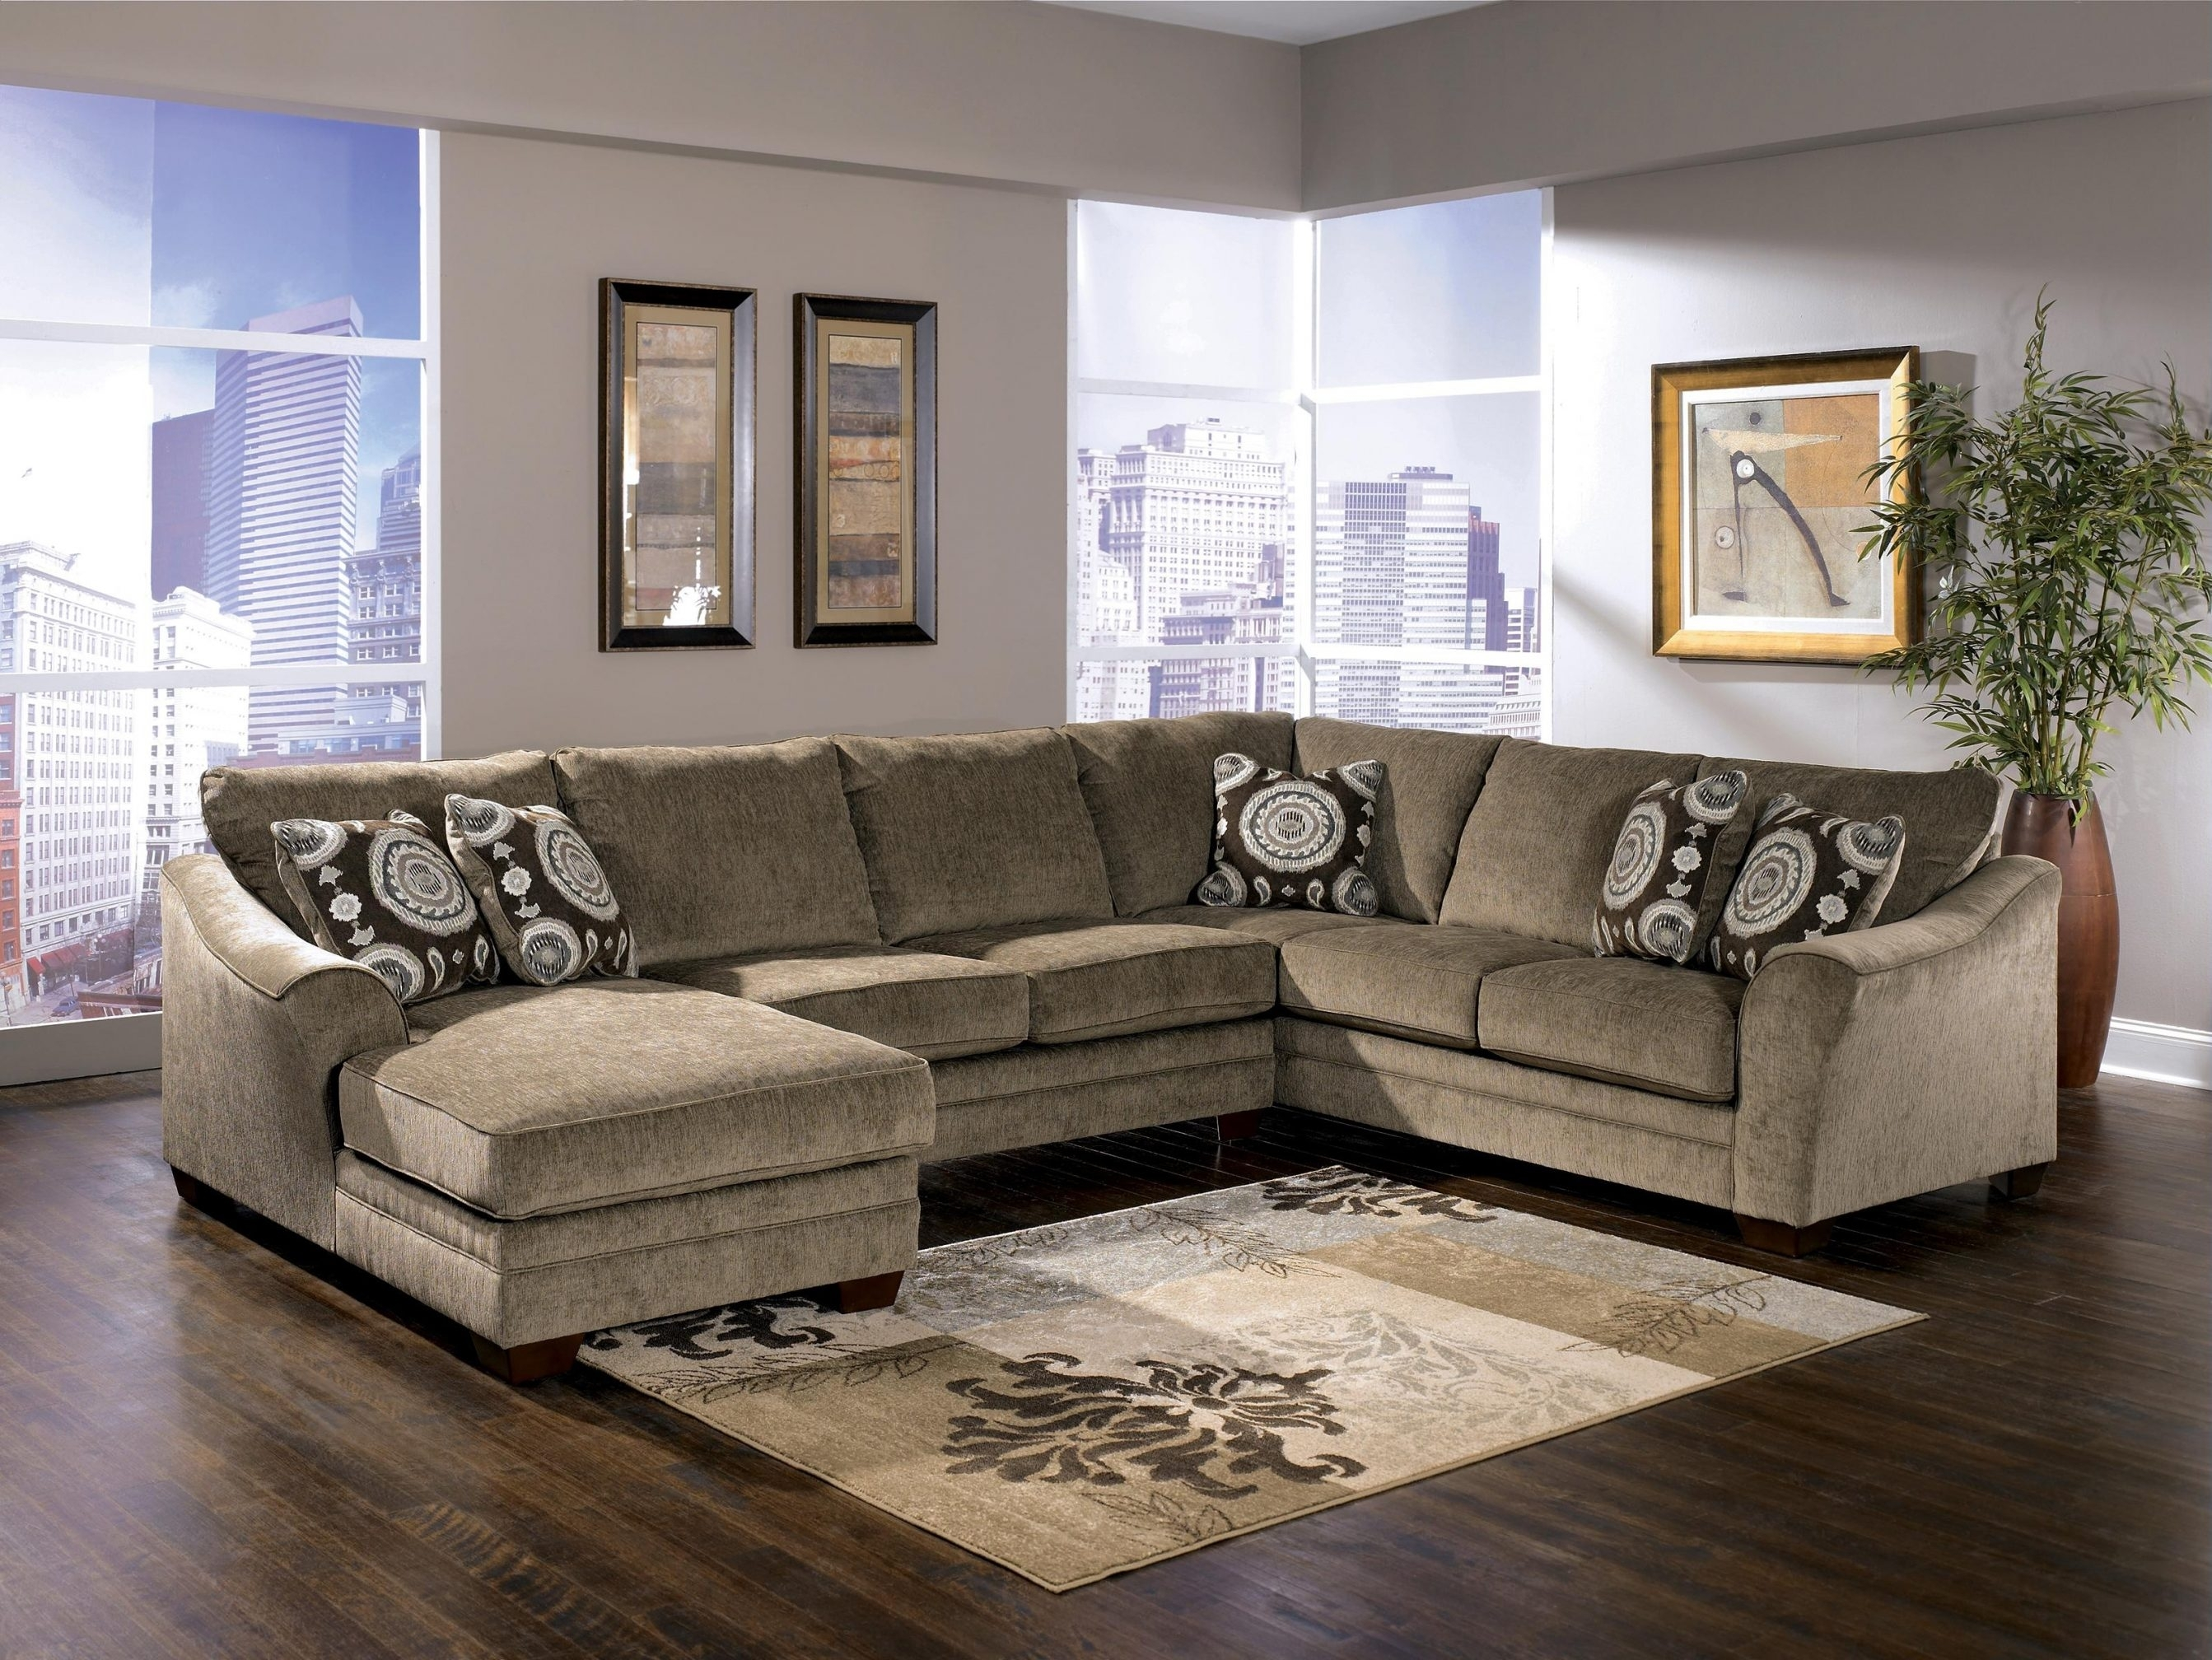 Ashley Furniture Knoxville Tn #4 Signature Designashley Cosmo Inside Knoxville Tn Sectional Sofas (View 9 of 10)